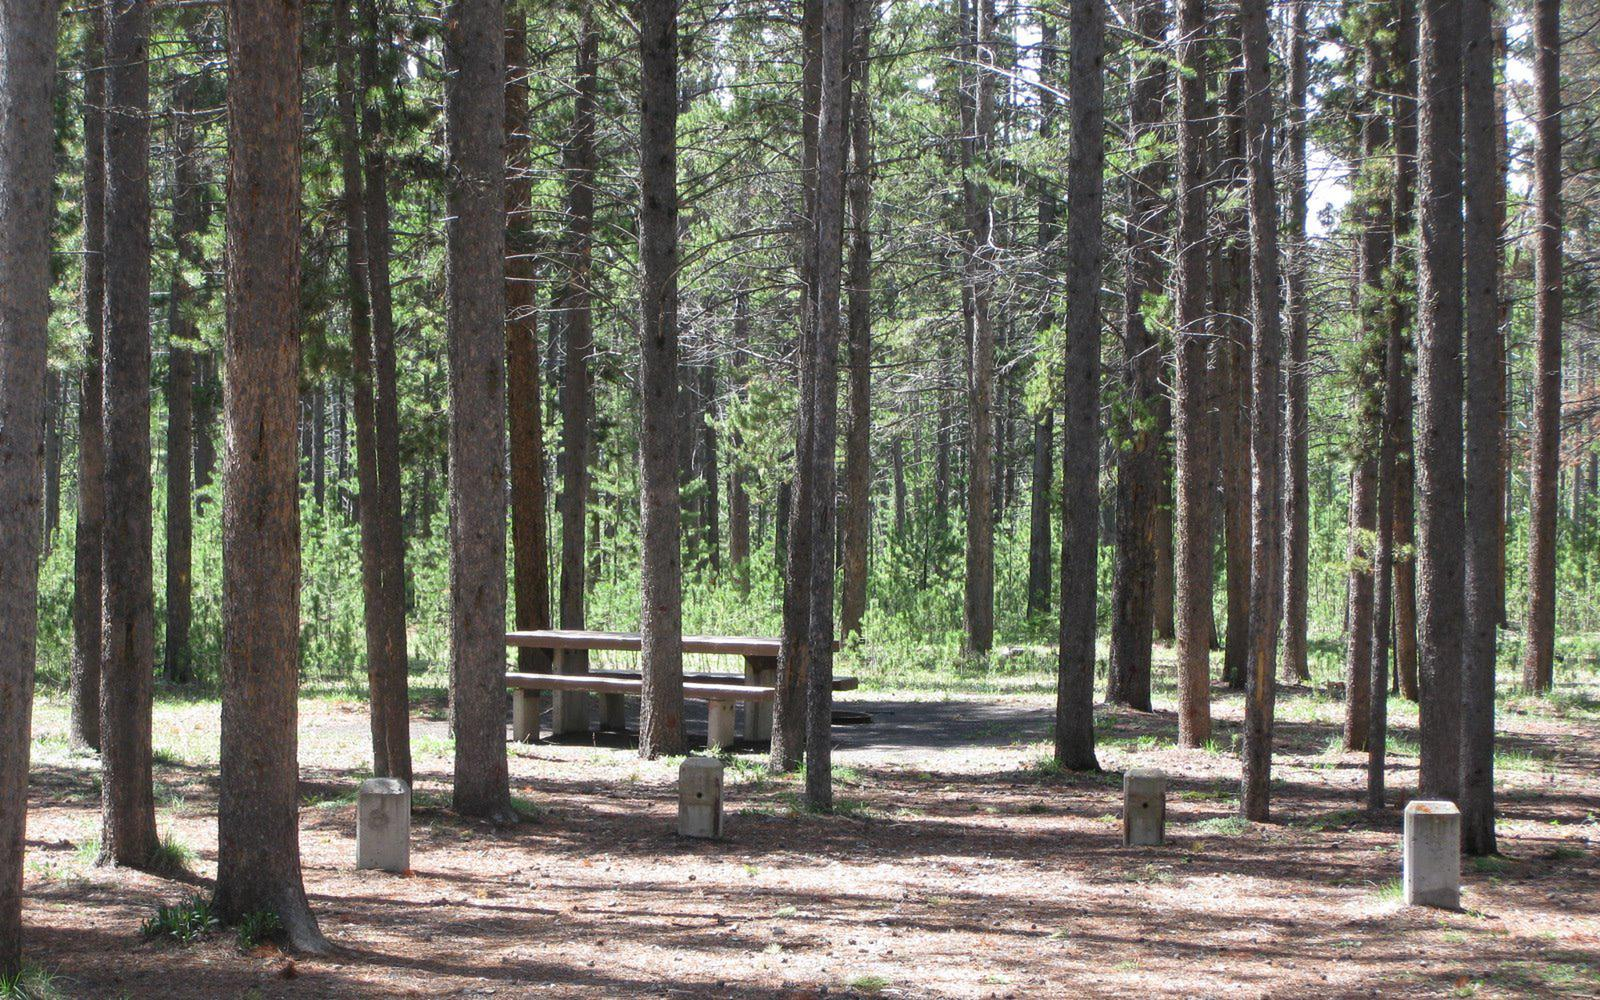 Site C14, surrounded by pine trees, picnic table & fire ringSite C14